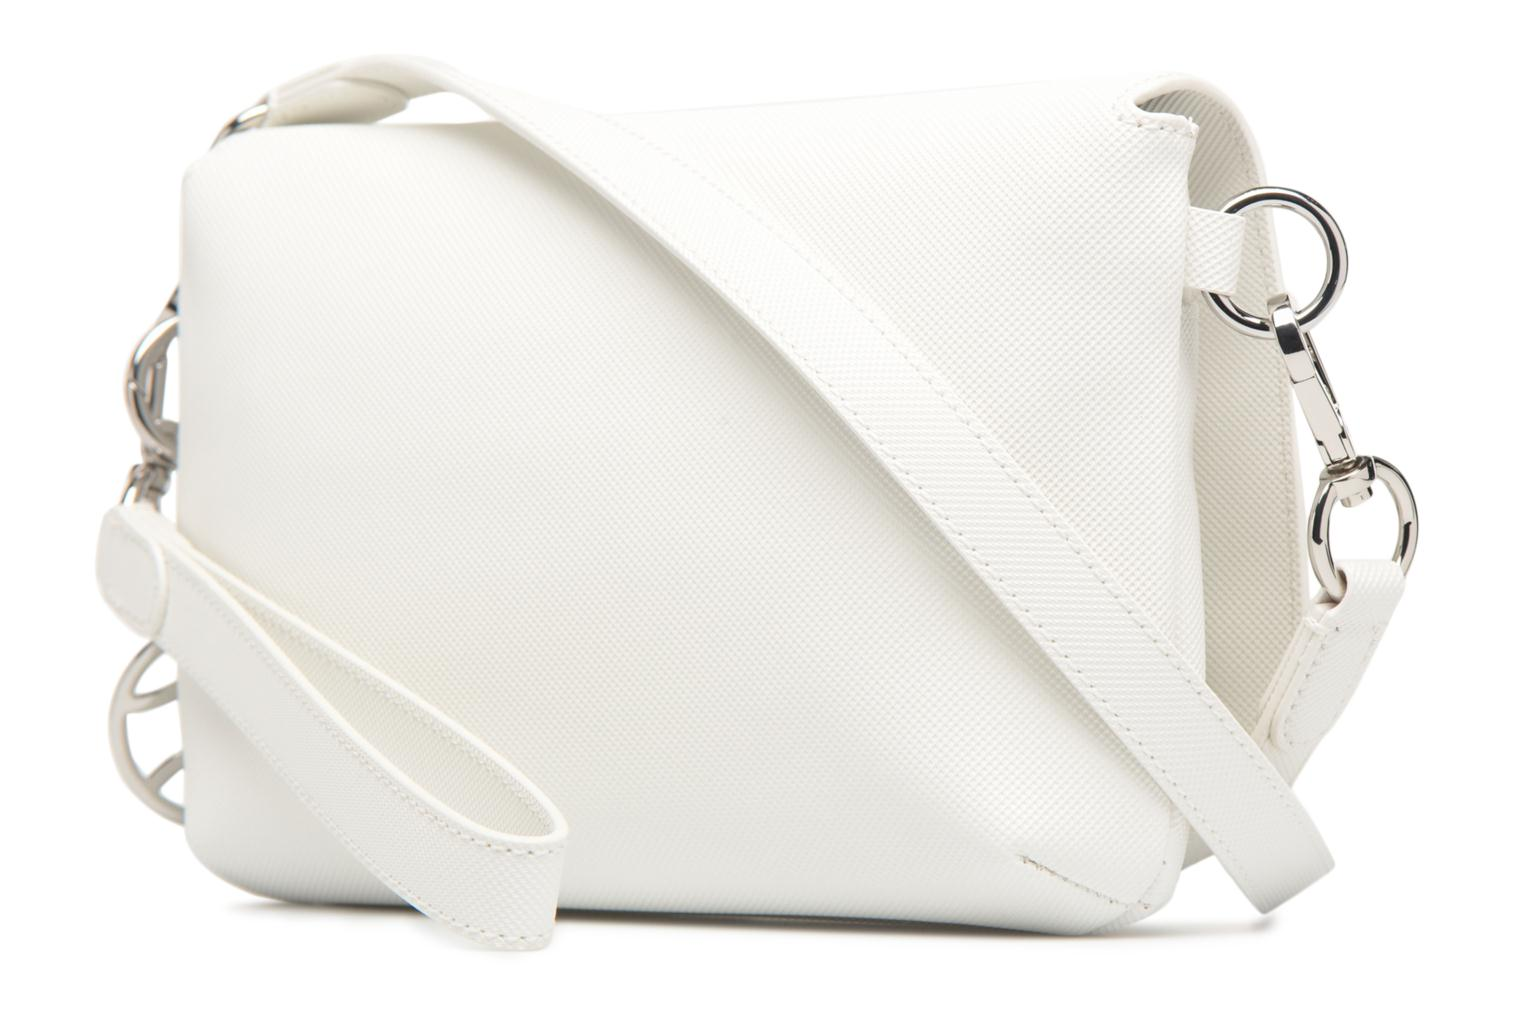 S CROSSOVER BAG Marshmallow